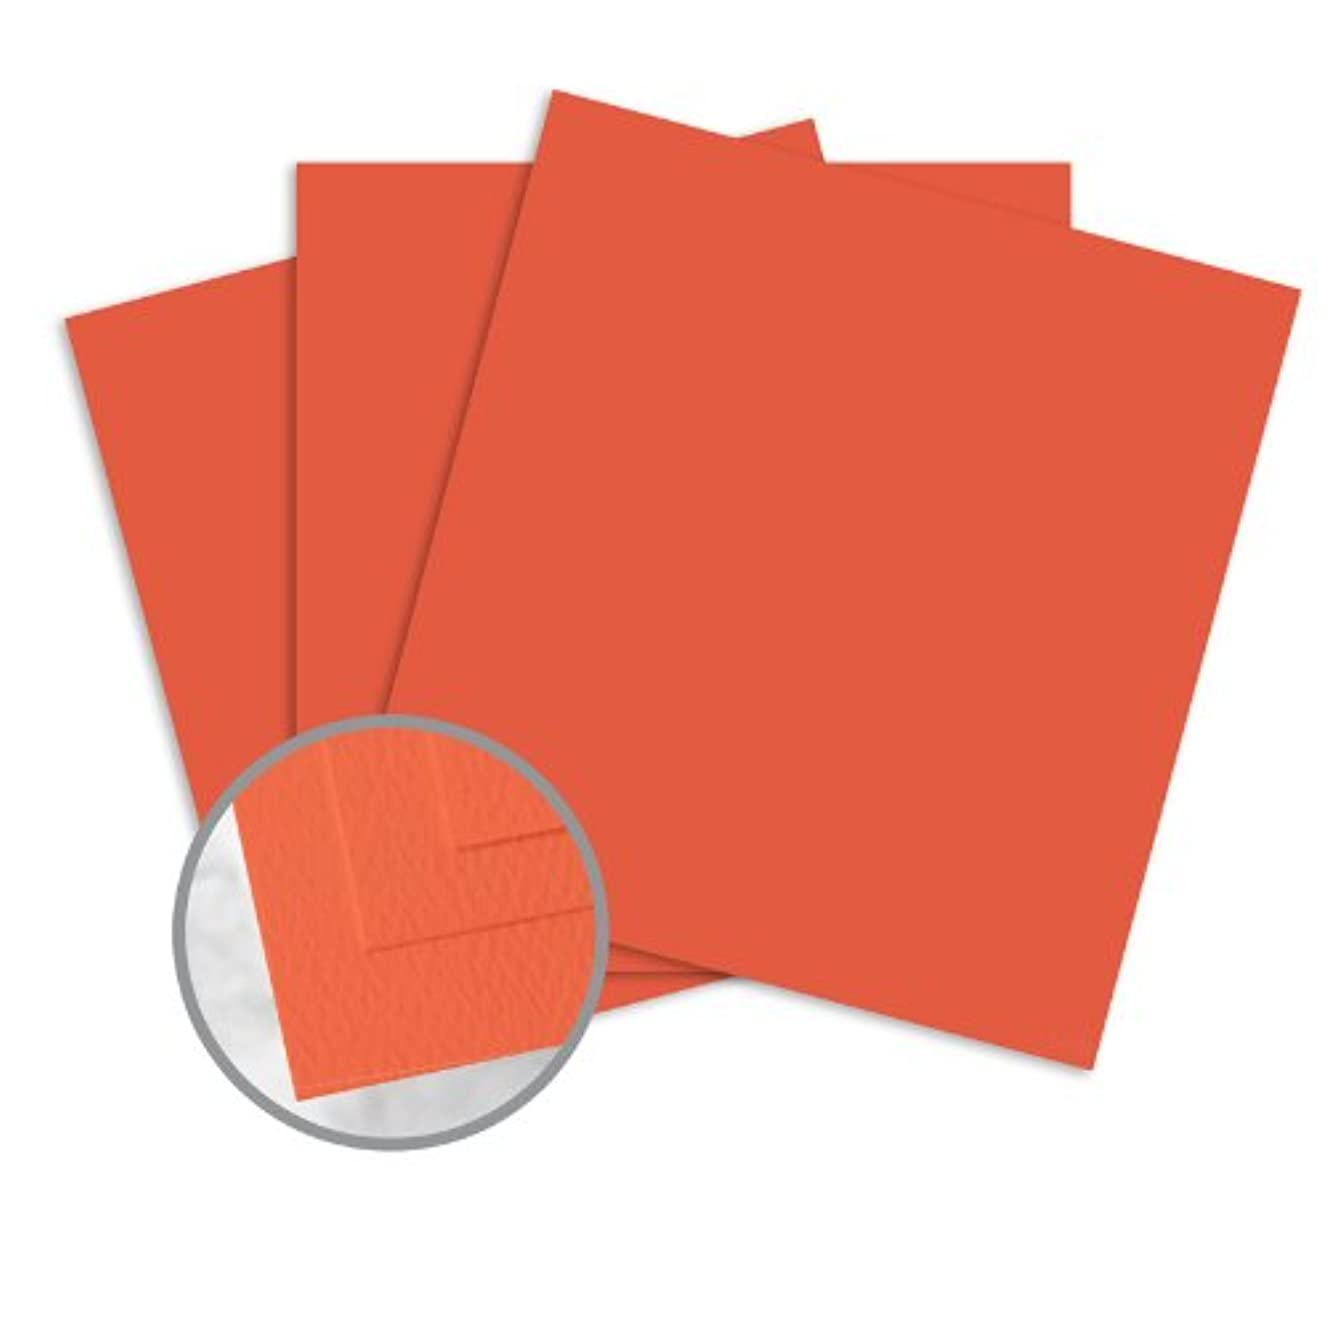 CutMates Bowl of Oranges Card Stock - 8 1/2 x 11 in 65 lb Cover Felt 250 per Package